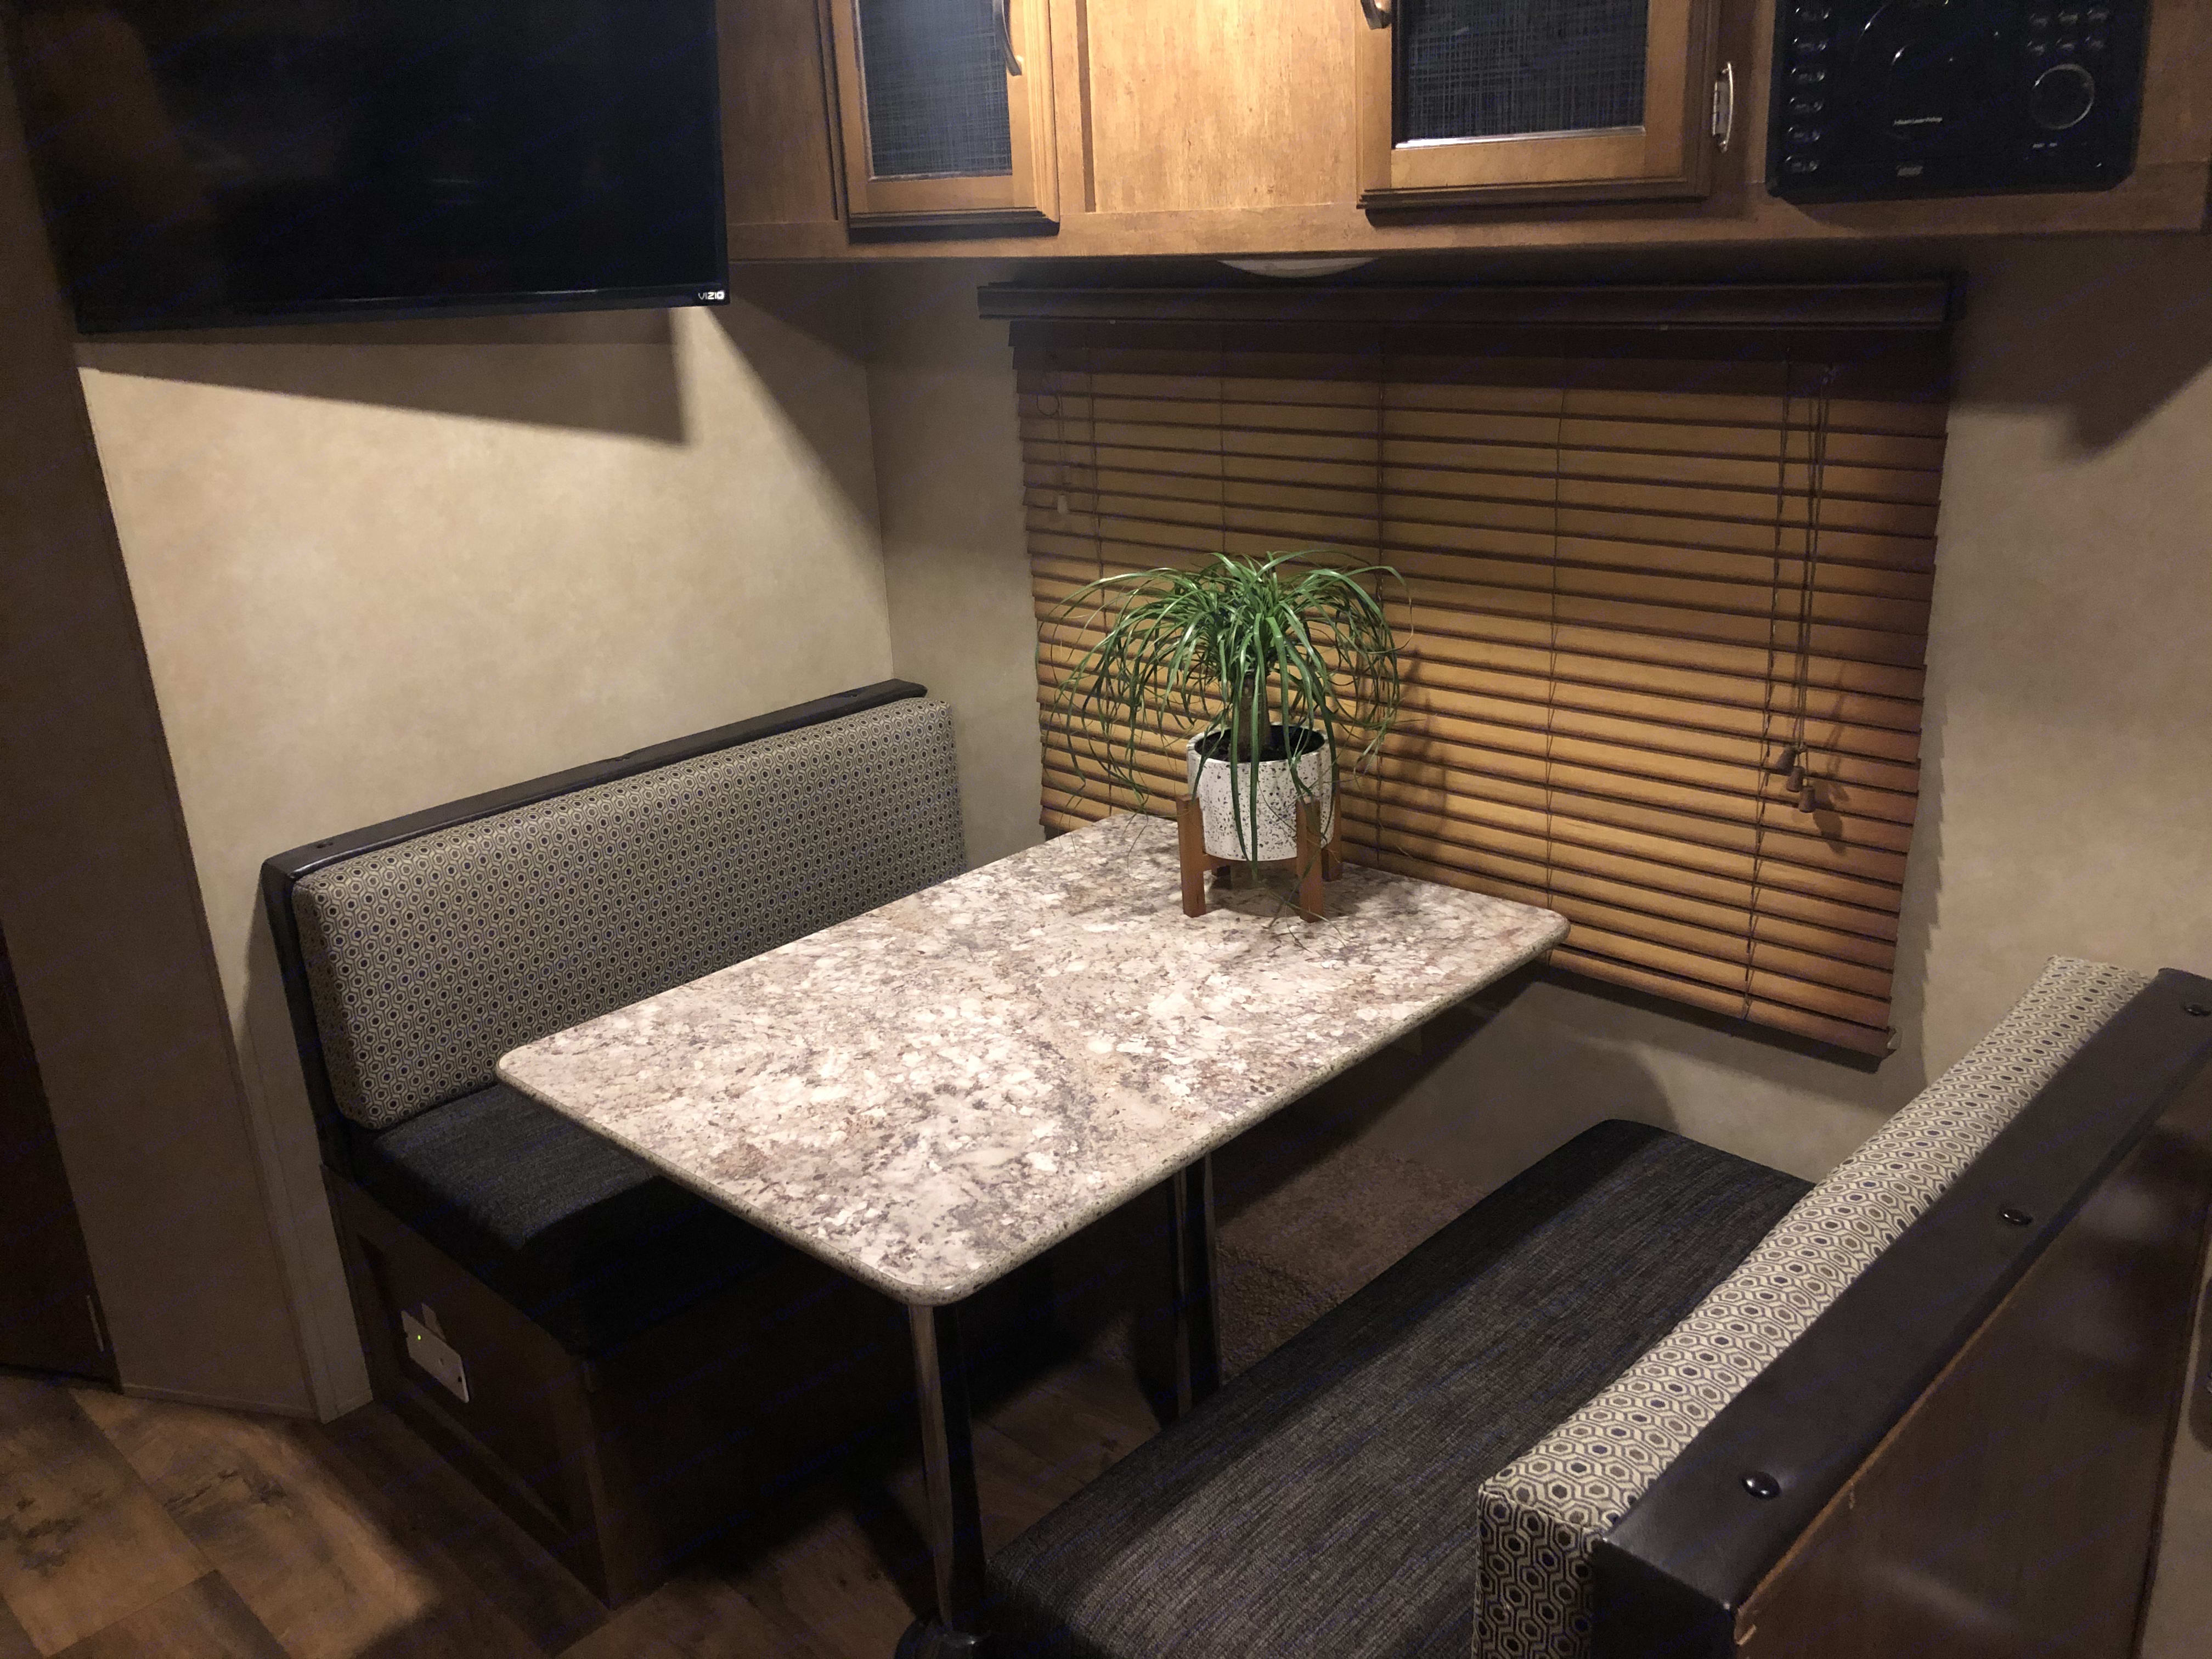 Converts to sleeping area at night. Forest River Salem Cruise Lite 2017